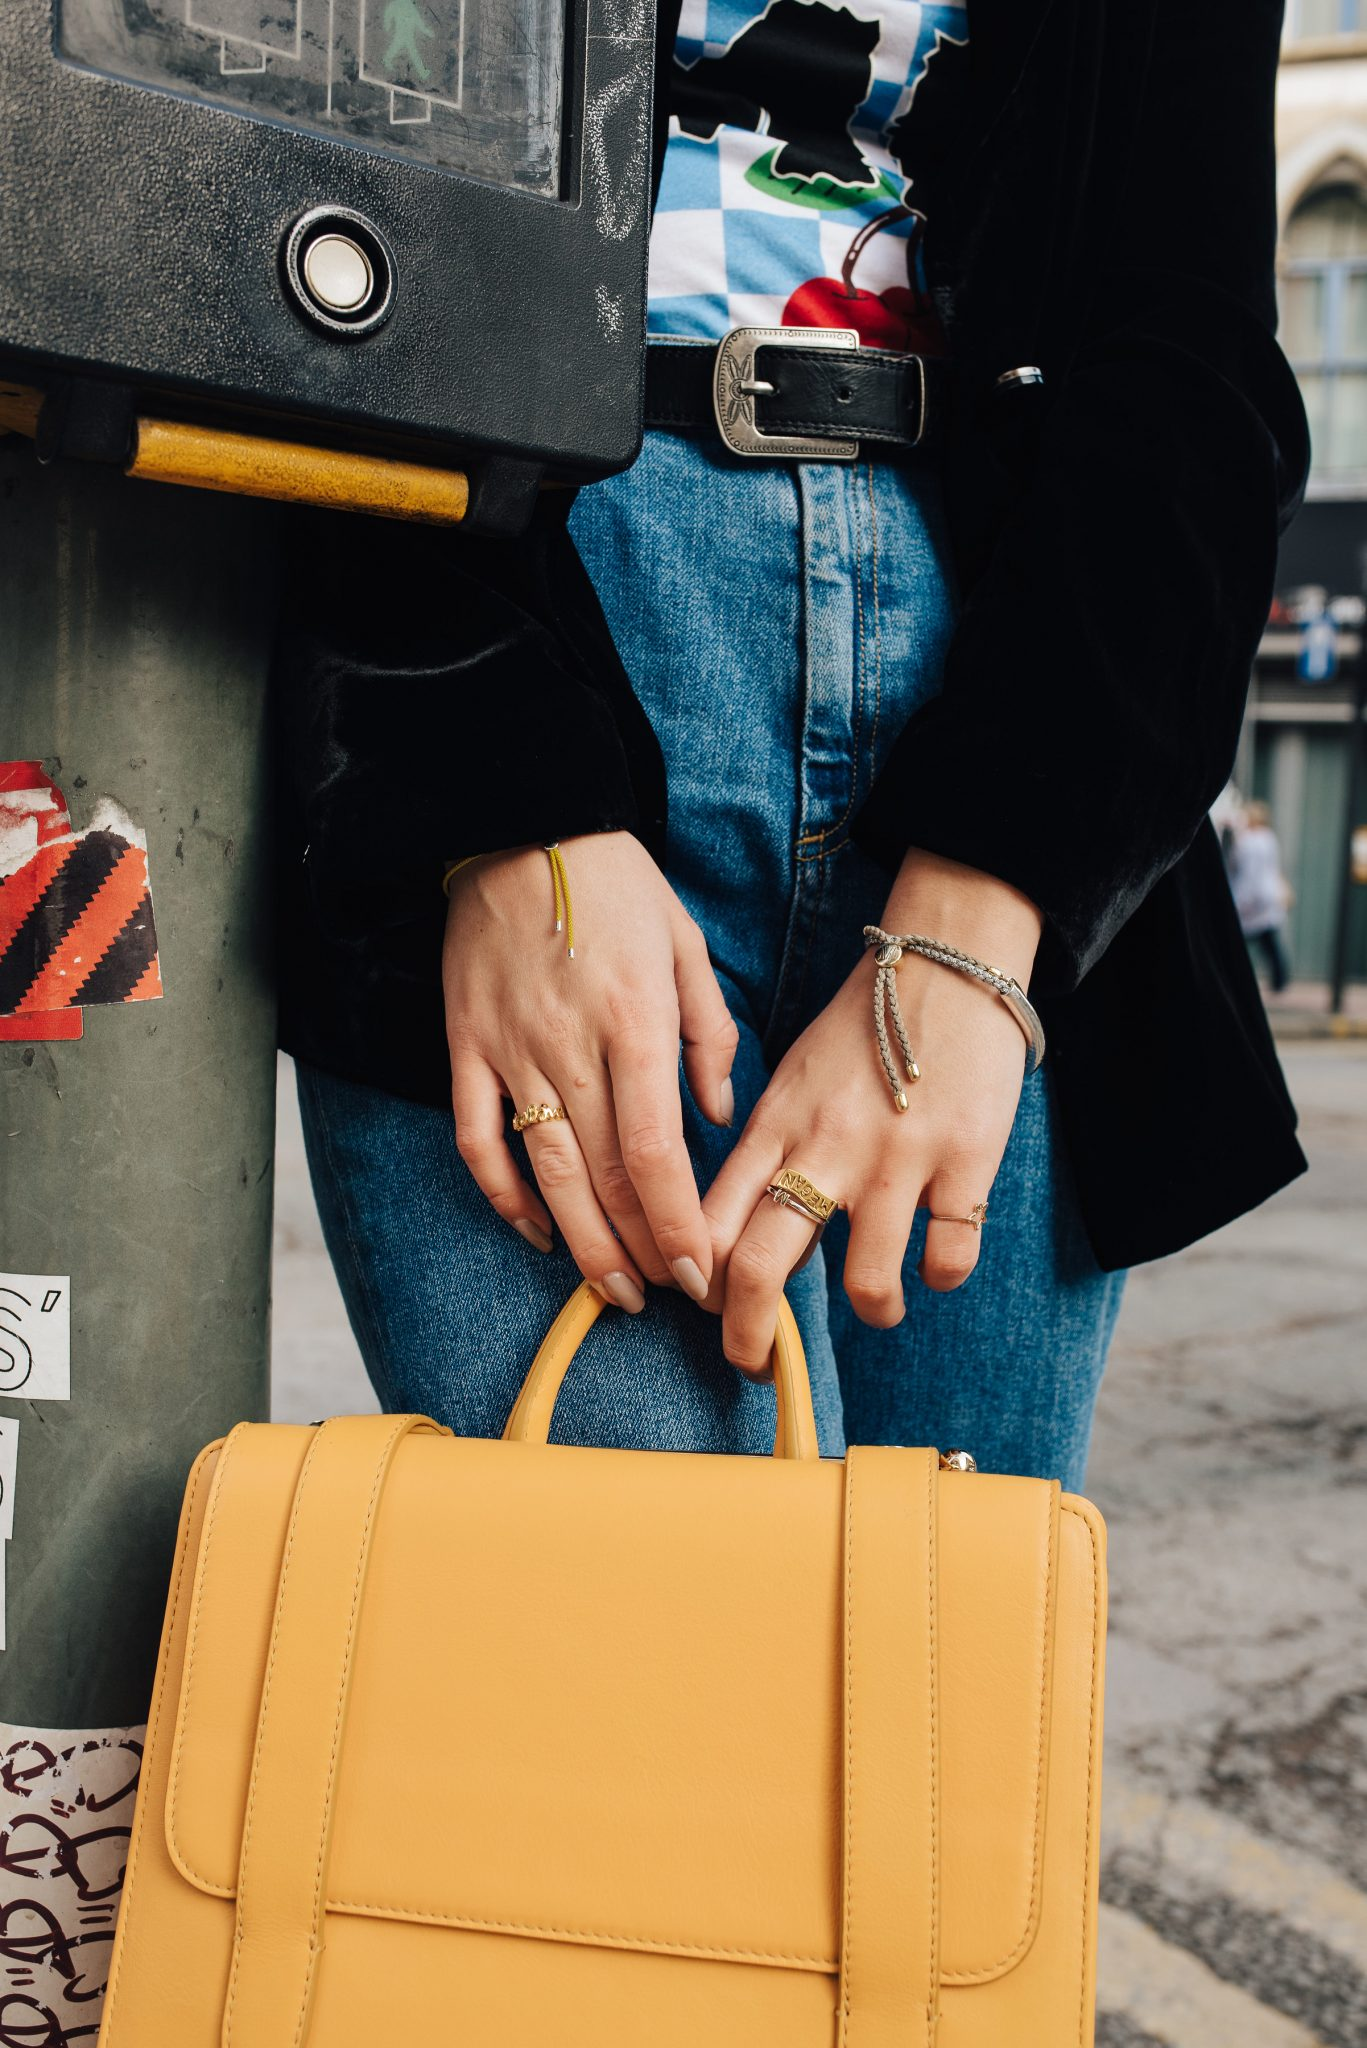 HOW TO STYLE YELLOW HANDBAGS